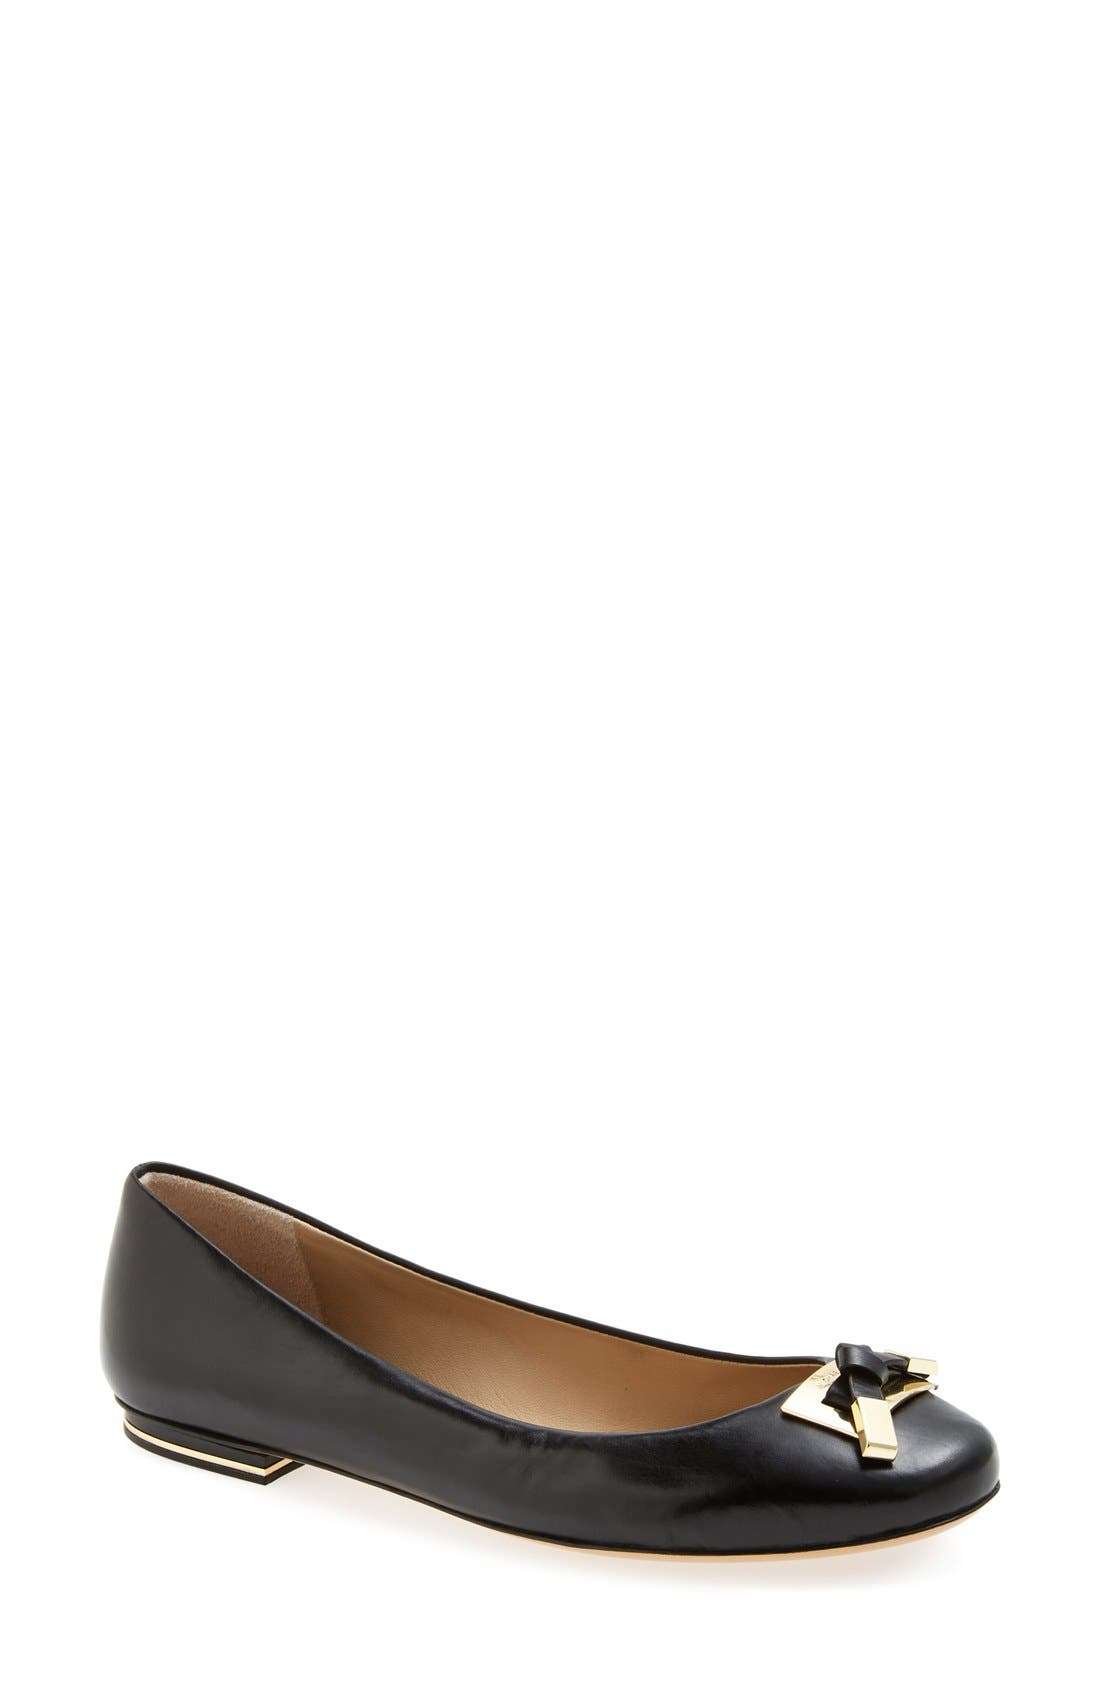 Alternate Image 1 Selected - Michael Kors 'Pearl' Ballet Flat (Women)